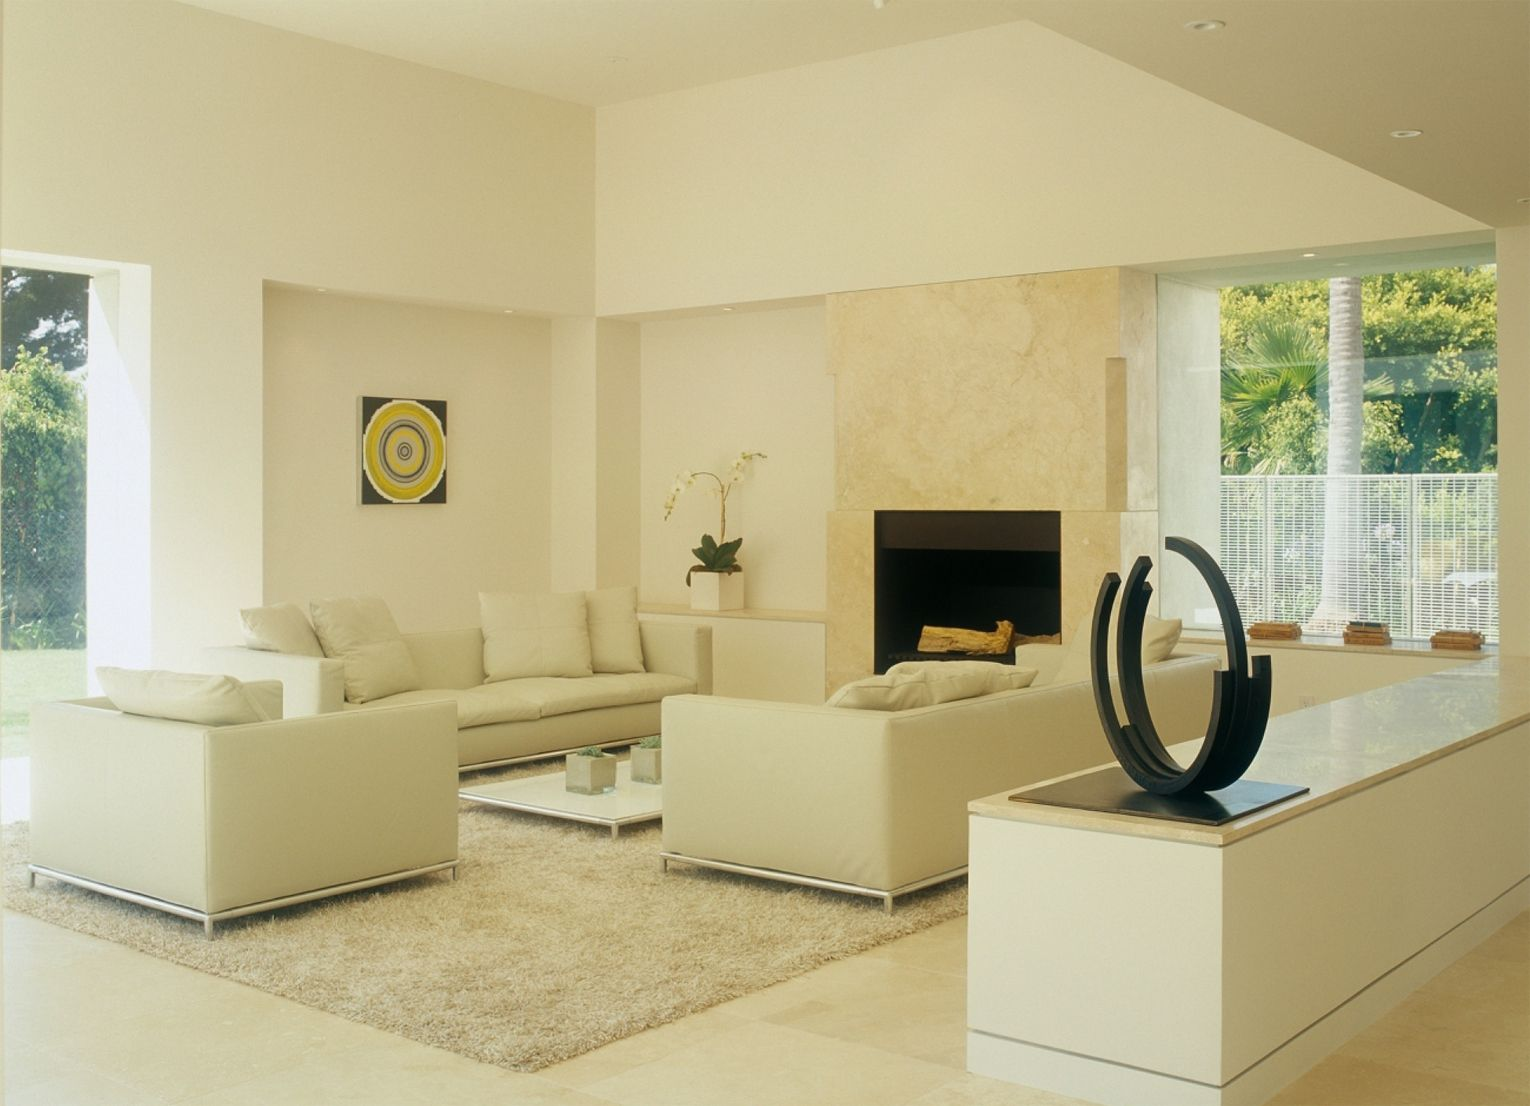 50 Best Neutral Colors To Design A Stylish Room -Best Neutral Paint ...